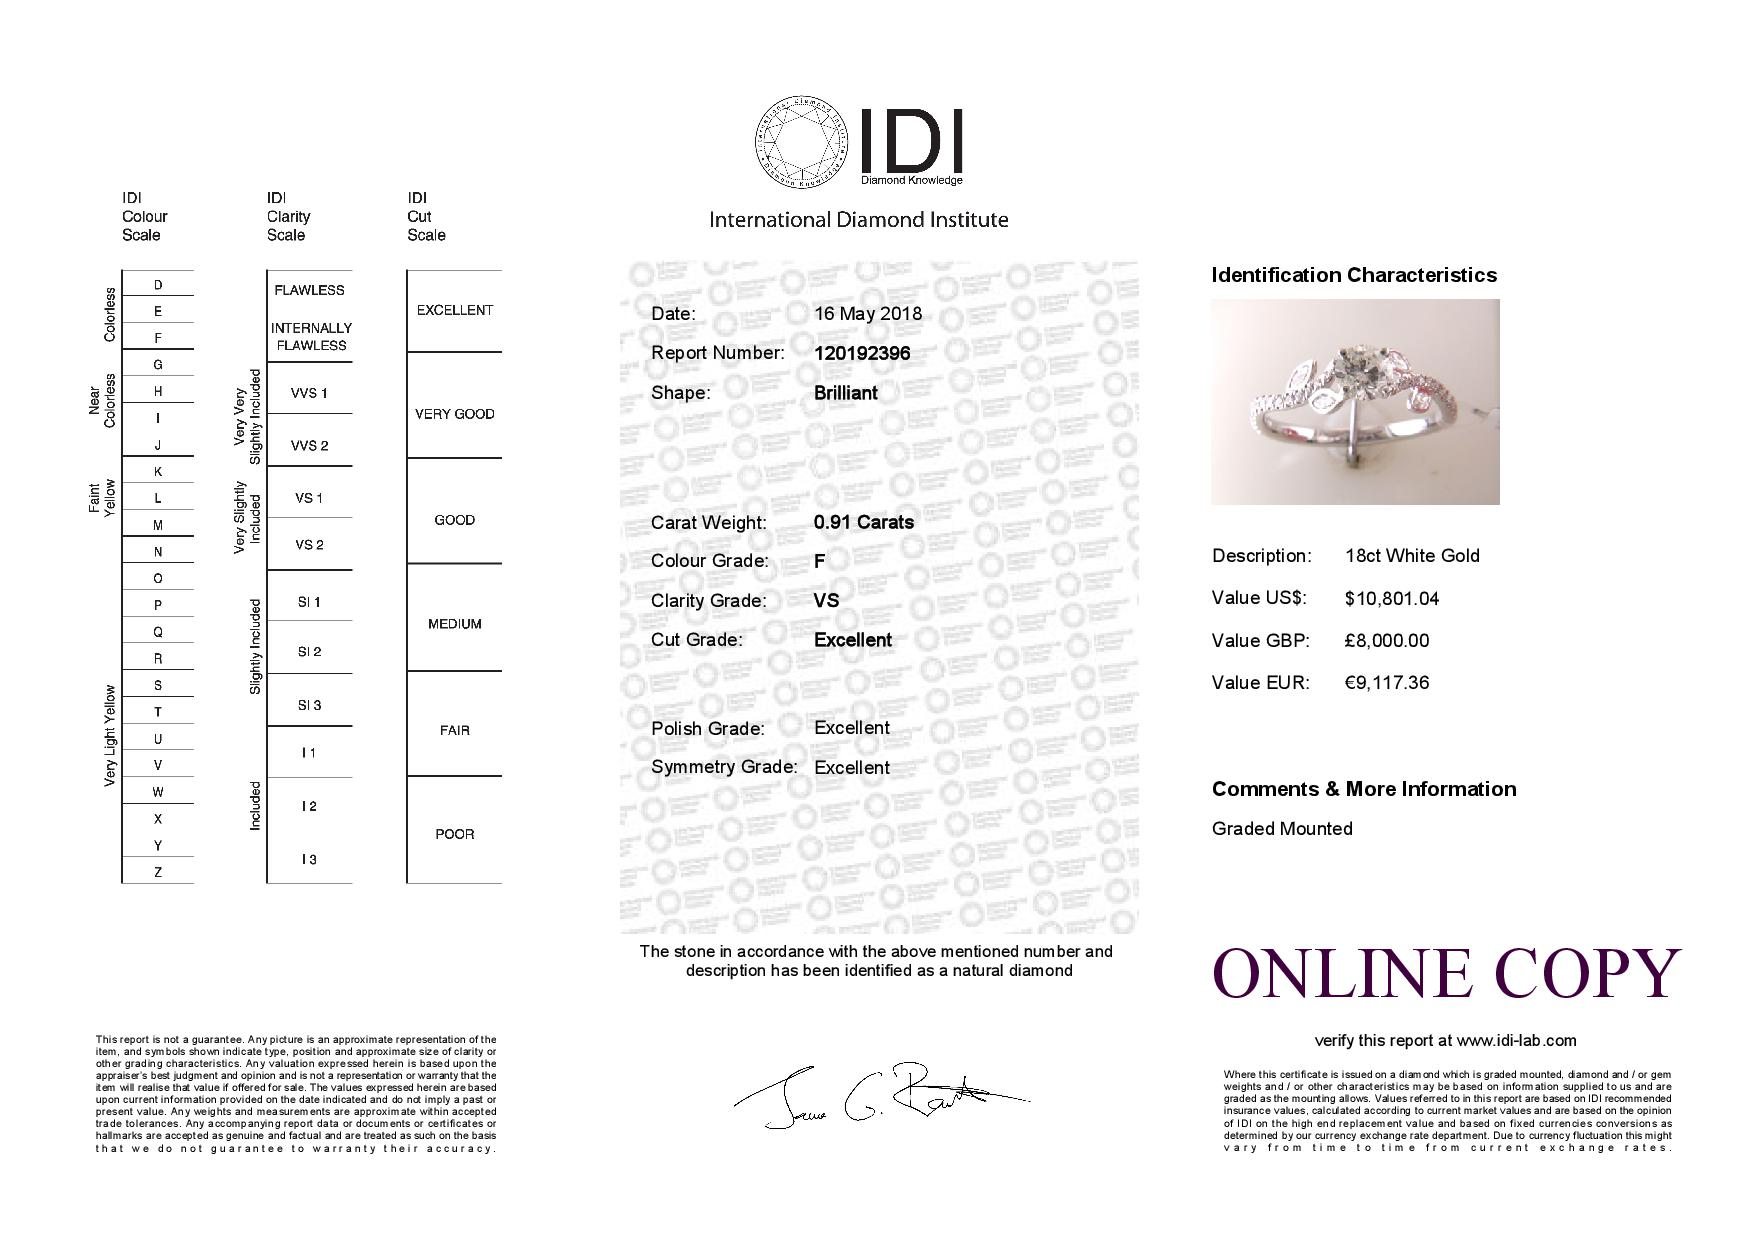 18ct White Gold Single Stone Diamond Ring With Stone Set Shoulders (0.55) 0.91 Carats - Image 5 of 5